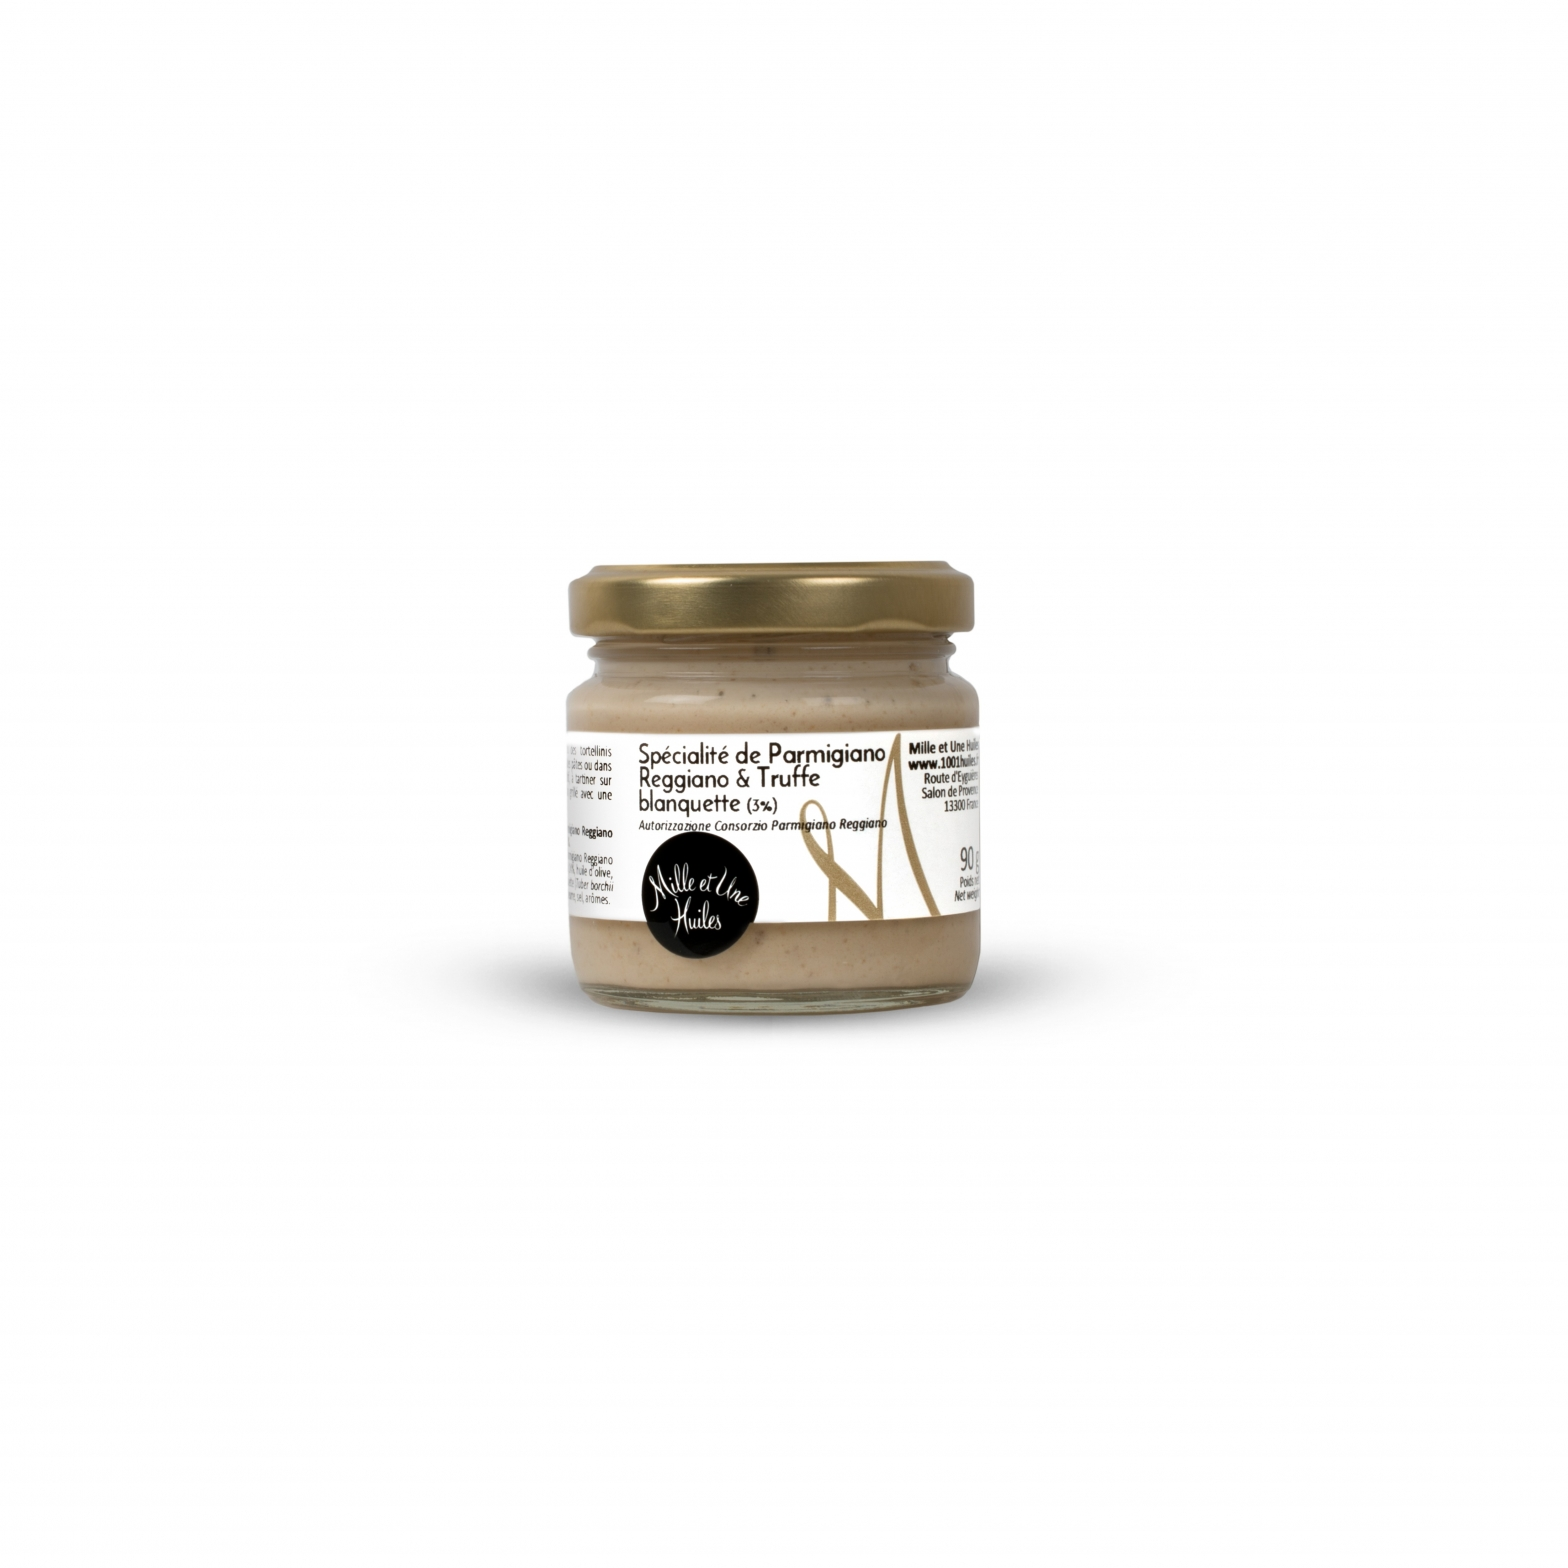 Parmesan cheese with truffle (3%) spread